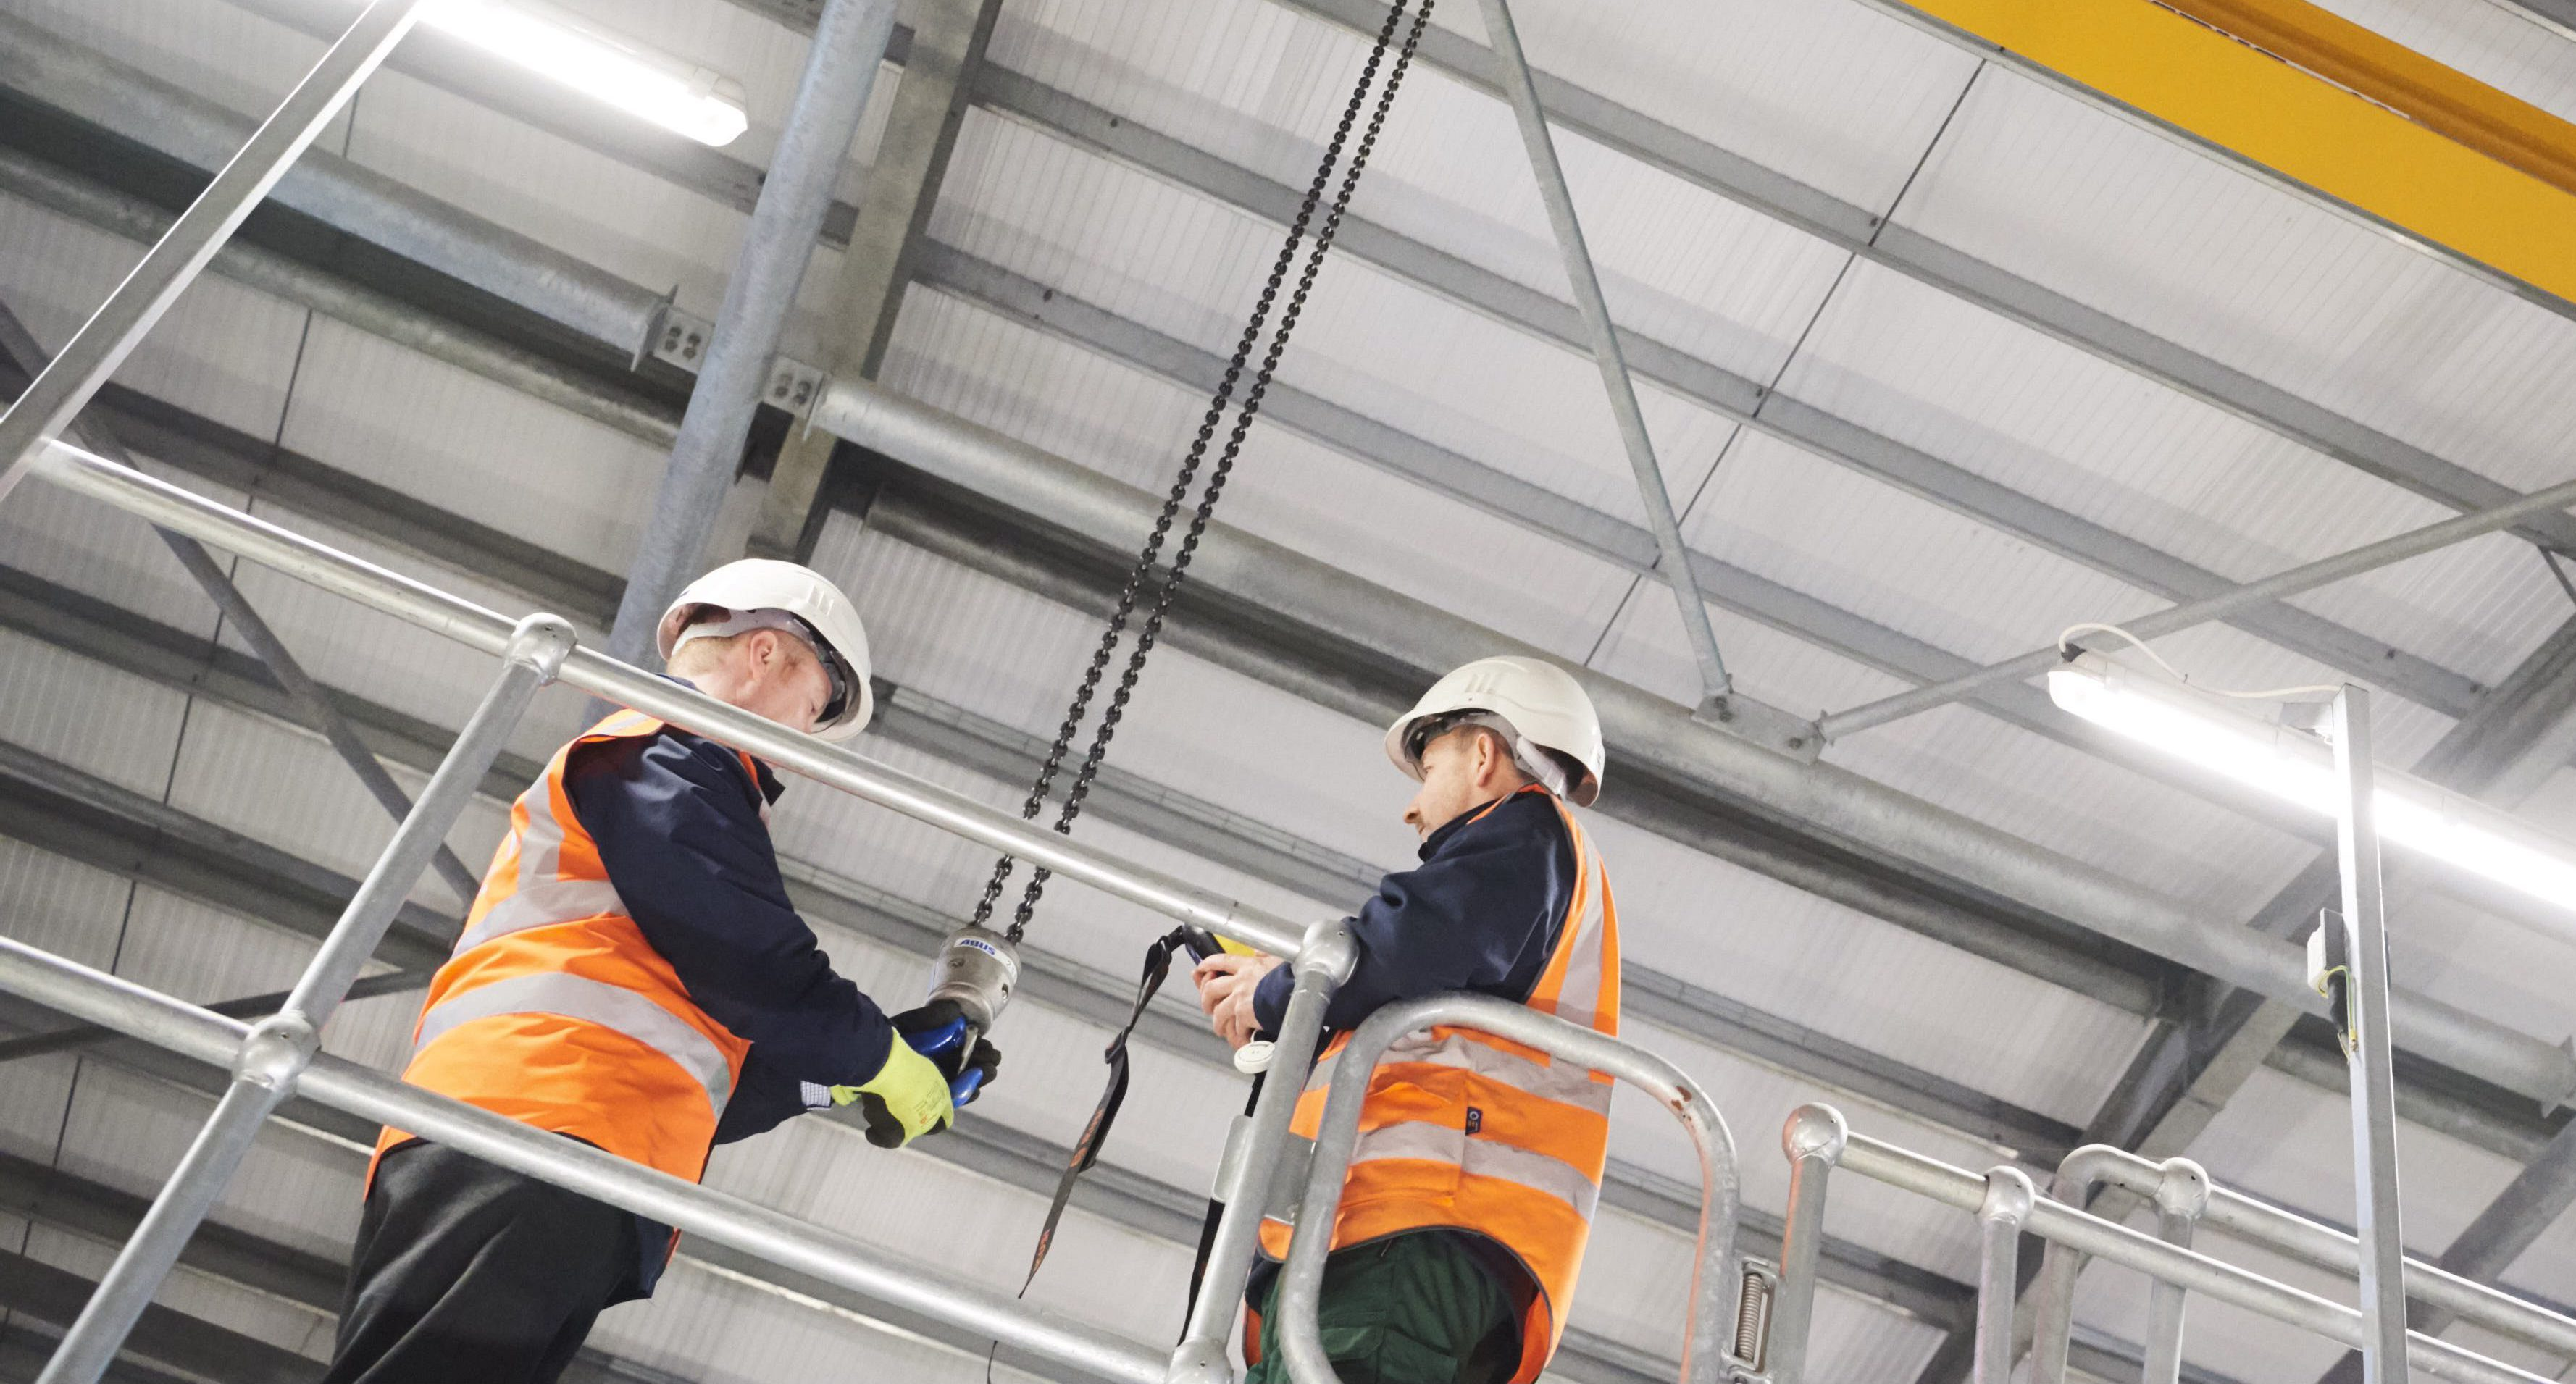 Looking up at 2 male colleagues - both in hard hats and helmets, one holding a hook on a chain dangling from the facility ceiling